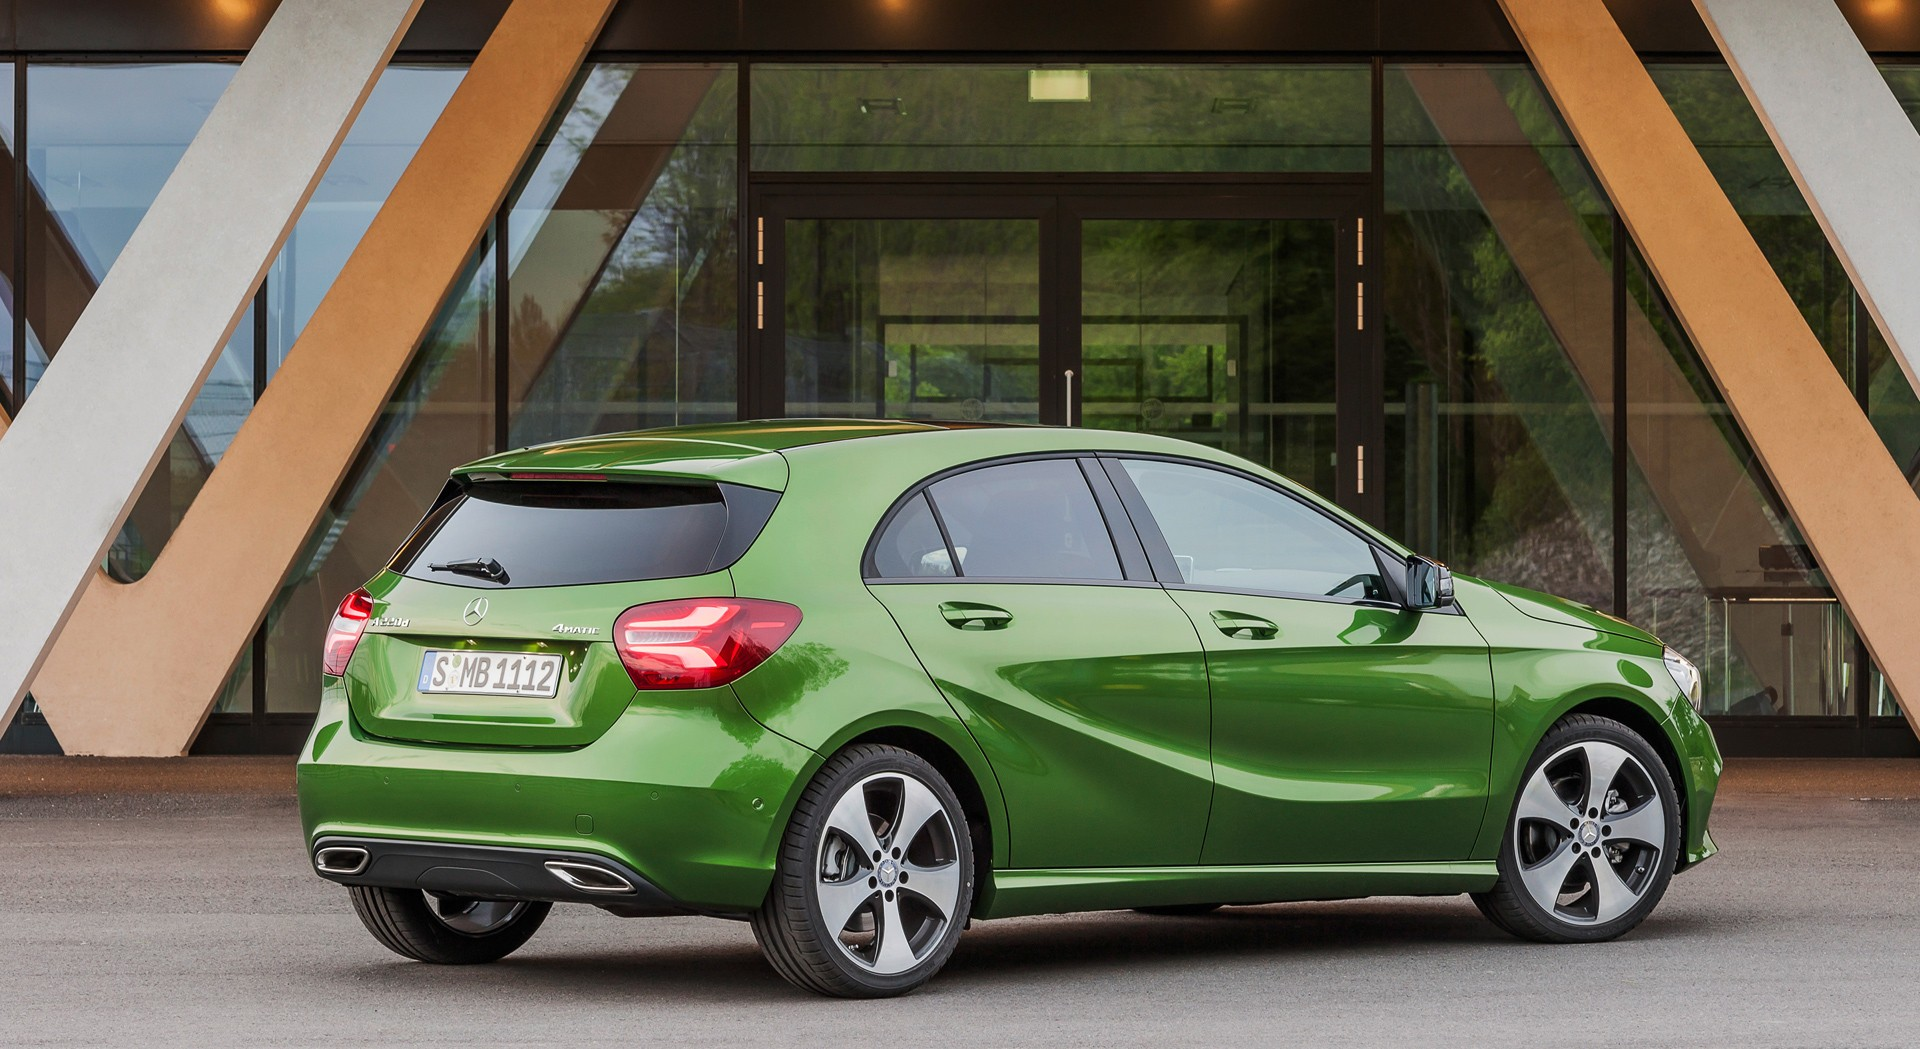 Mercedes benz a class green hd desktop wallpapers 4k hd for Mercedes benz a class